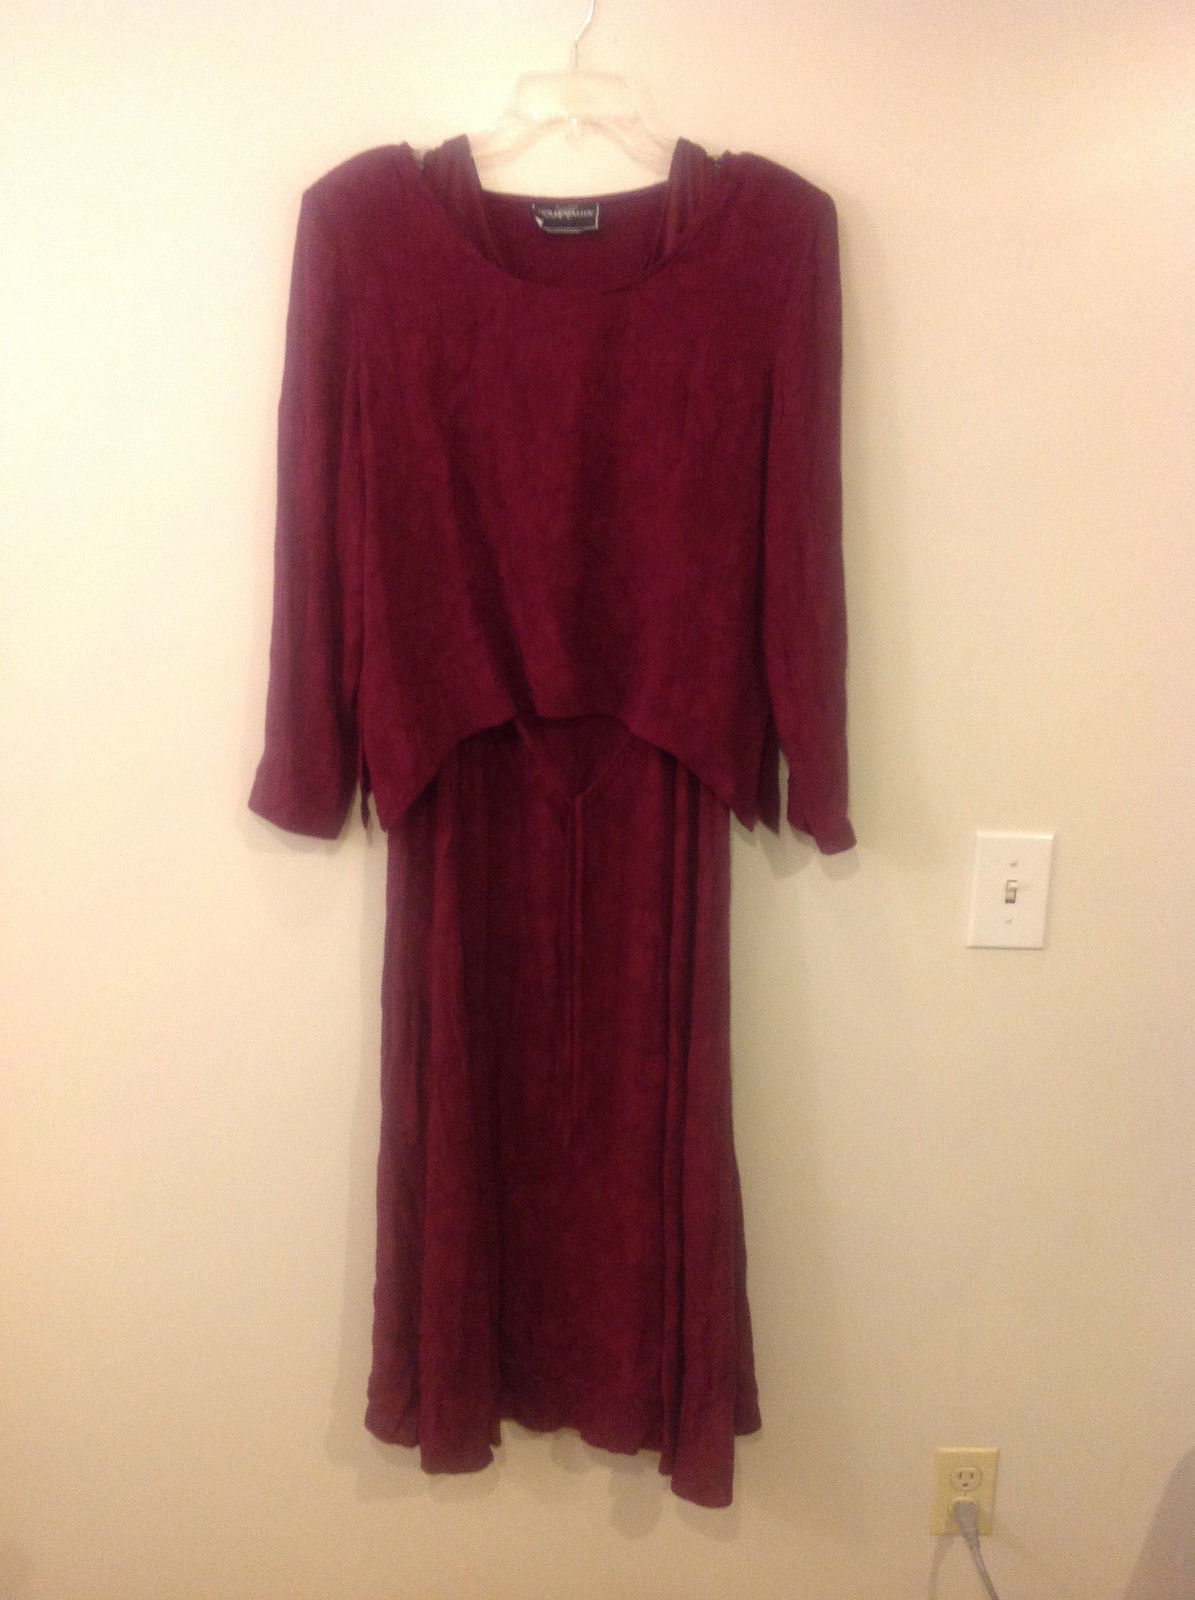 Molly Malloy Women Size 10 Dress & Top 2 Piece Set Red Purple Maxi Floral Casual